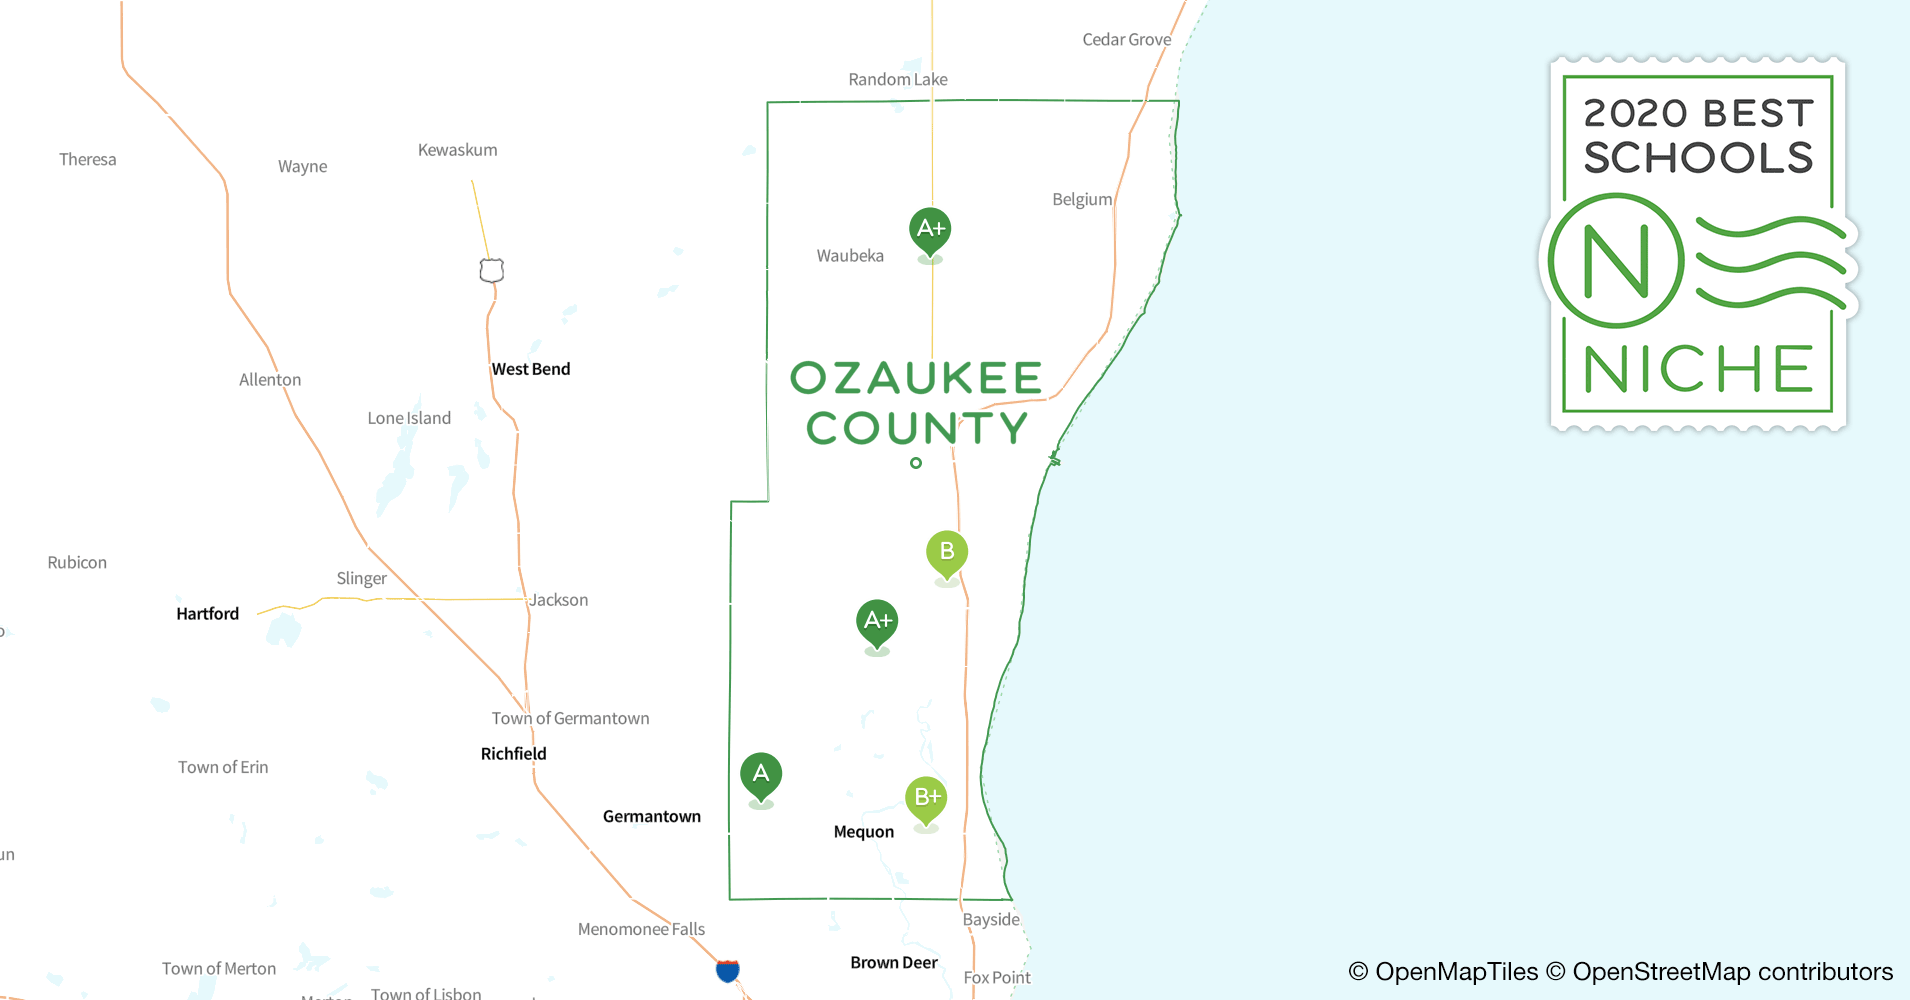 Districts in Ozaukee County, WI - Niche on map of shorewood, map of greendale, map of wausau, map of menomonee falls, map of lake geneva, map of superior, map of pewaukee, map of elm grove, map of belgium, map of mukwonago, map of fox point, map of eau claire,